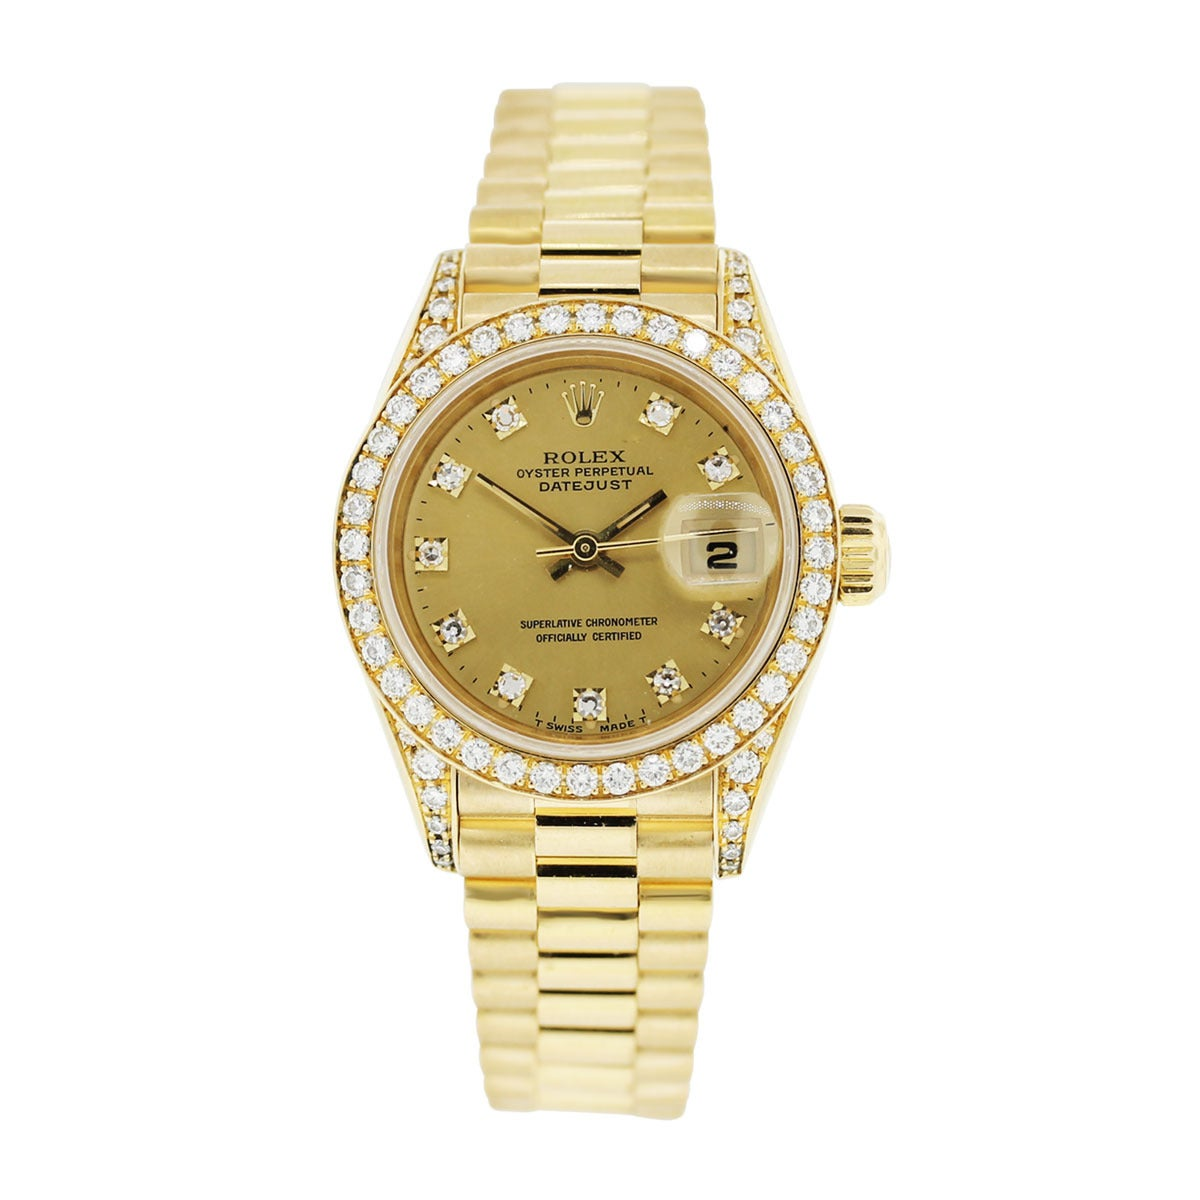 Rolex Lady's Yellow Gold Oyster Datejust Presidential Diamond Watch Ref 69158 2